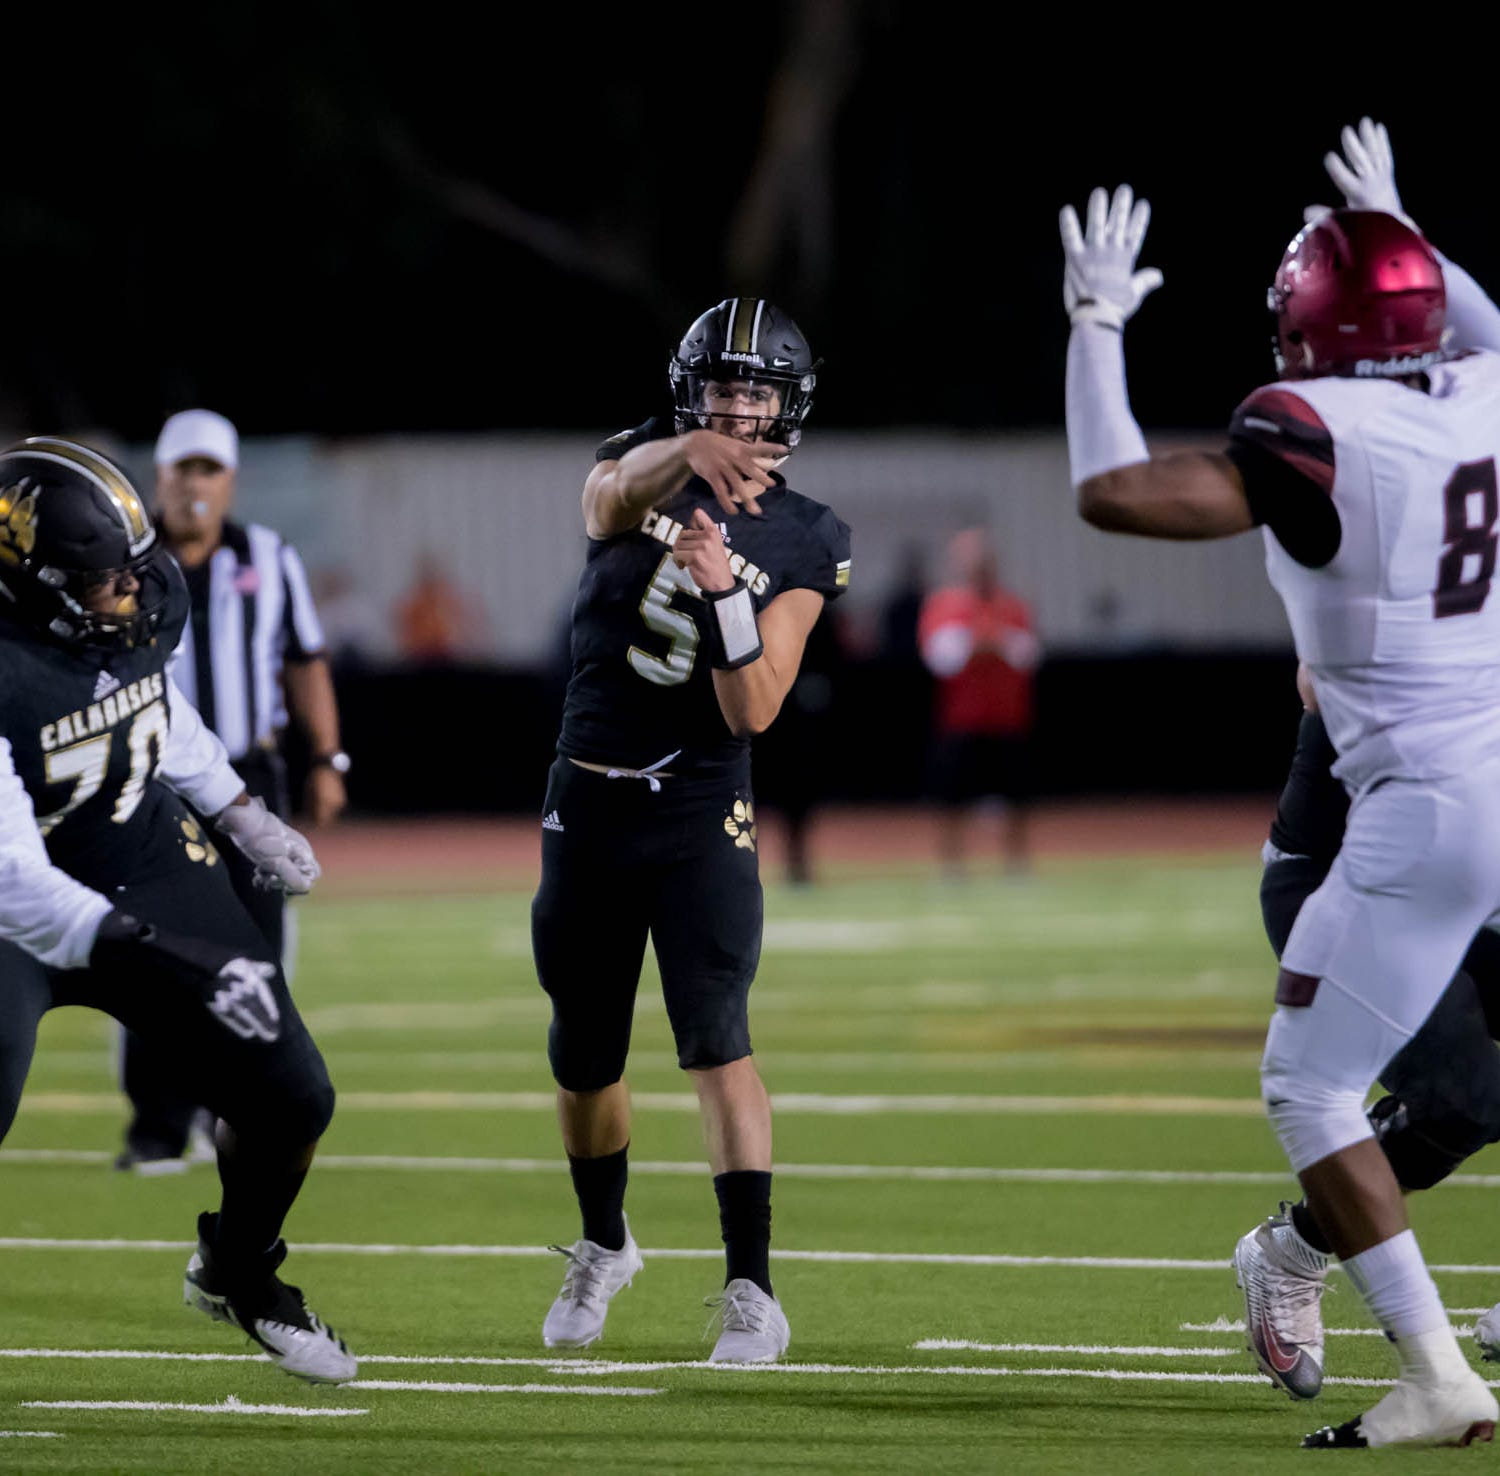 The Lock has your winners for Friday night's CIF-SS football semifinals